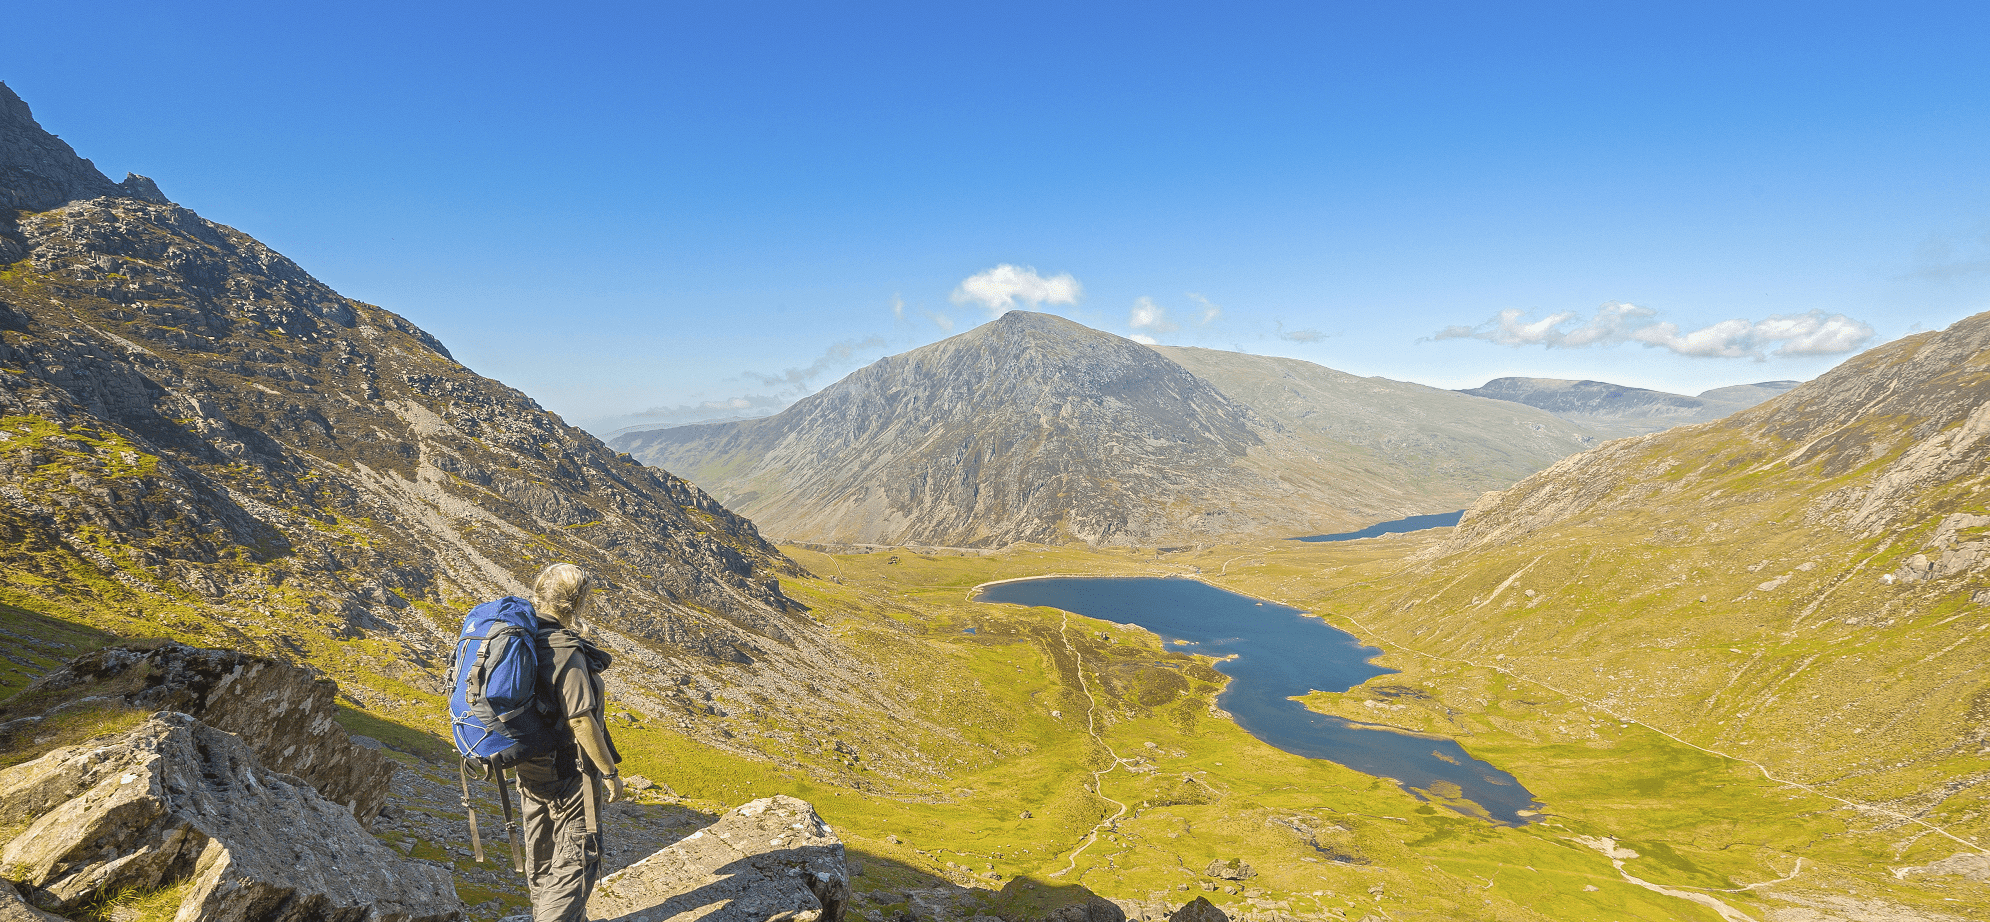 Walker on path down from devils Kitchen to Cwm Idwal with Llyn Idwal and Pen yr Ole Wen in shot